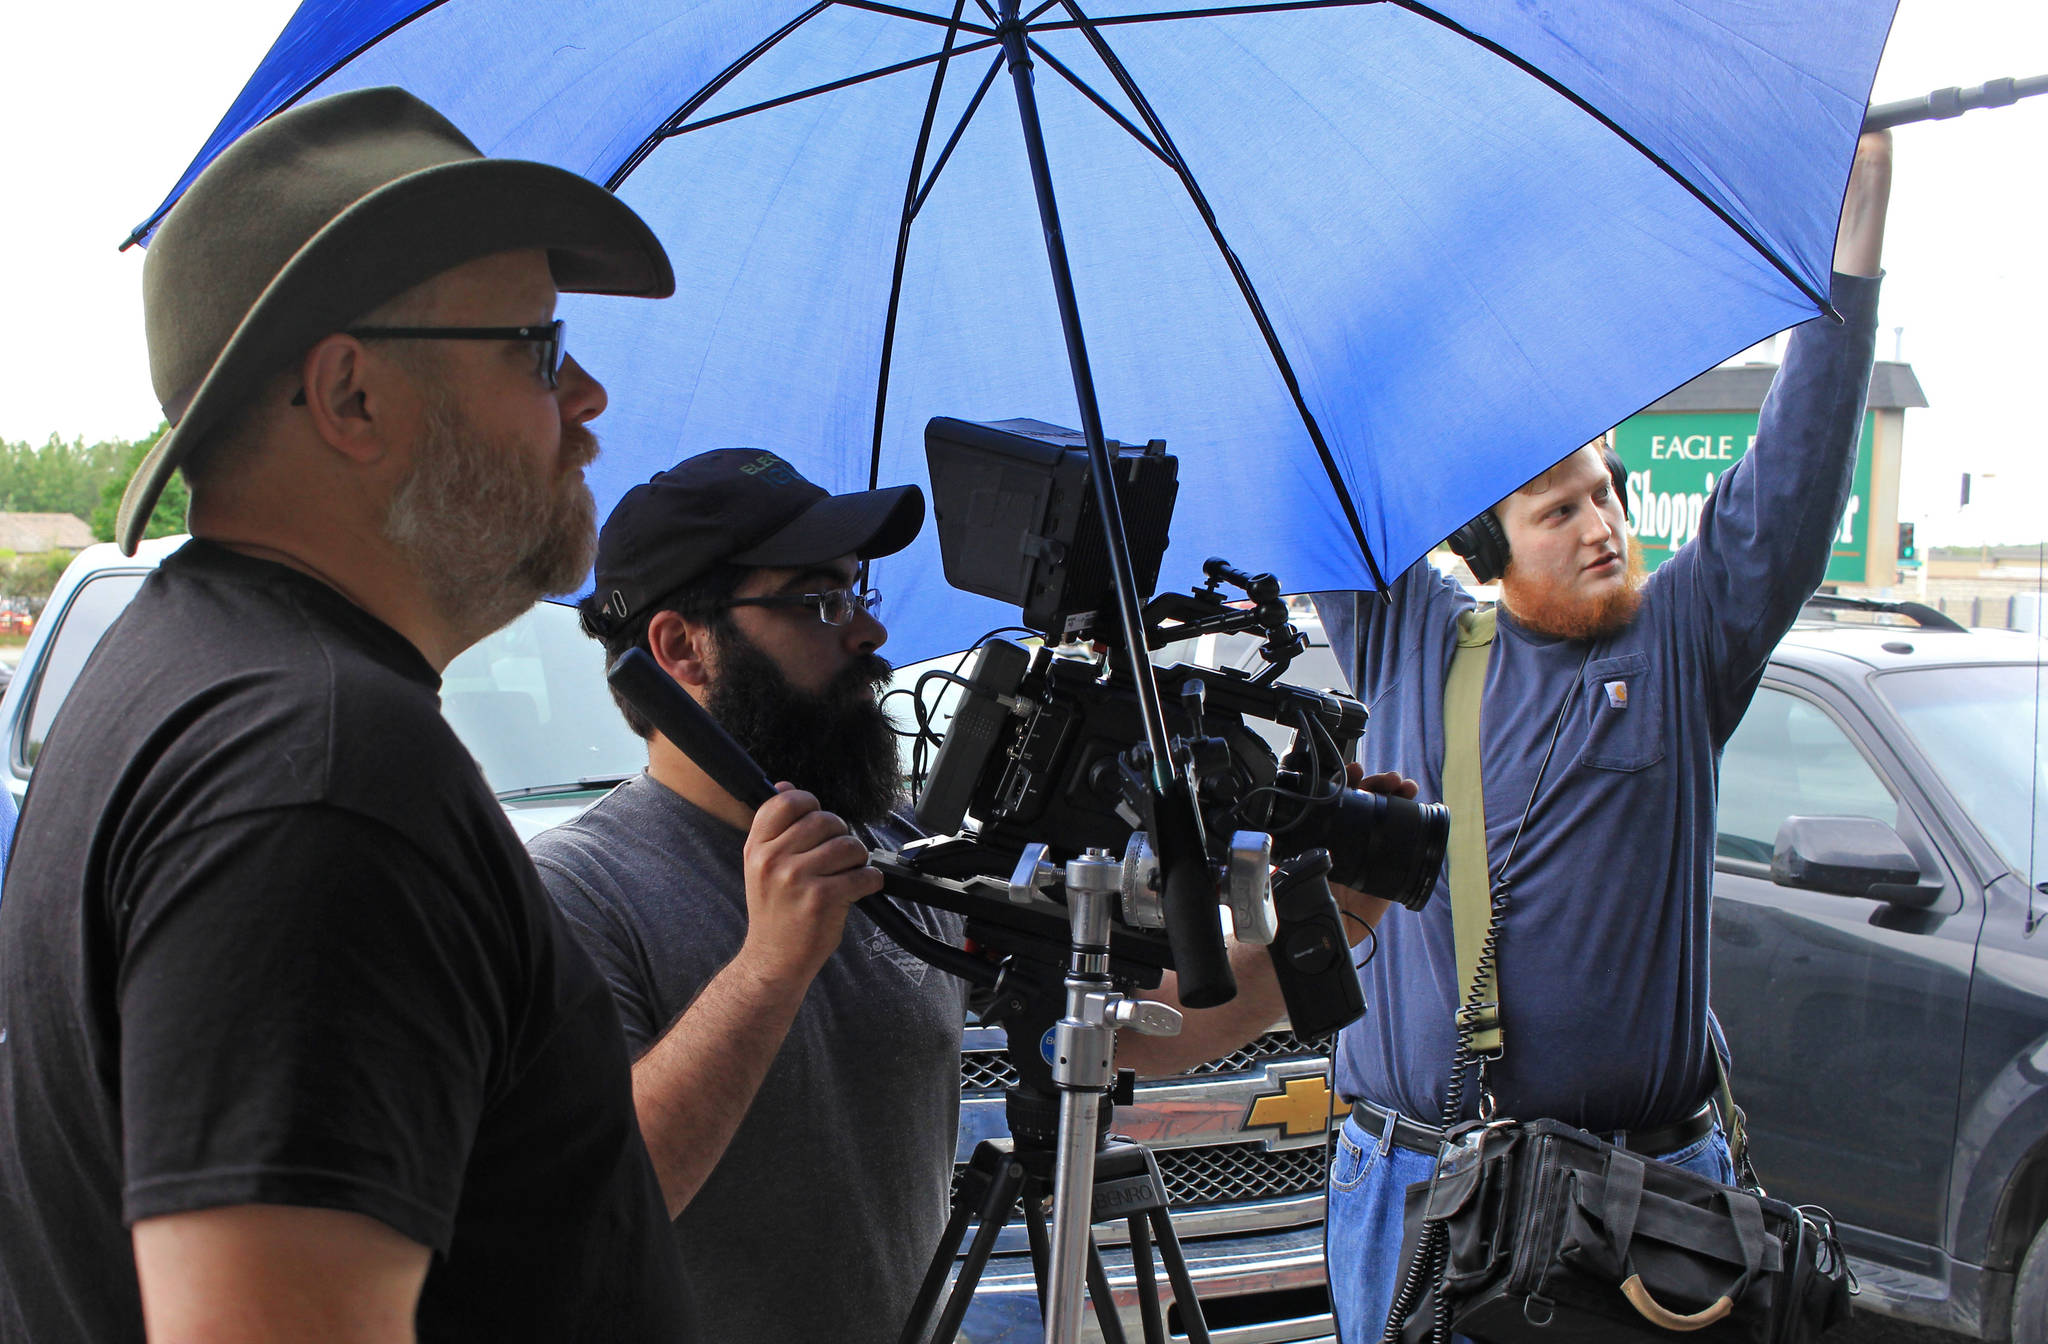 Local filmmakers bring Eagle River to the silver screen ...